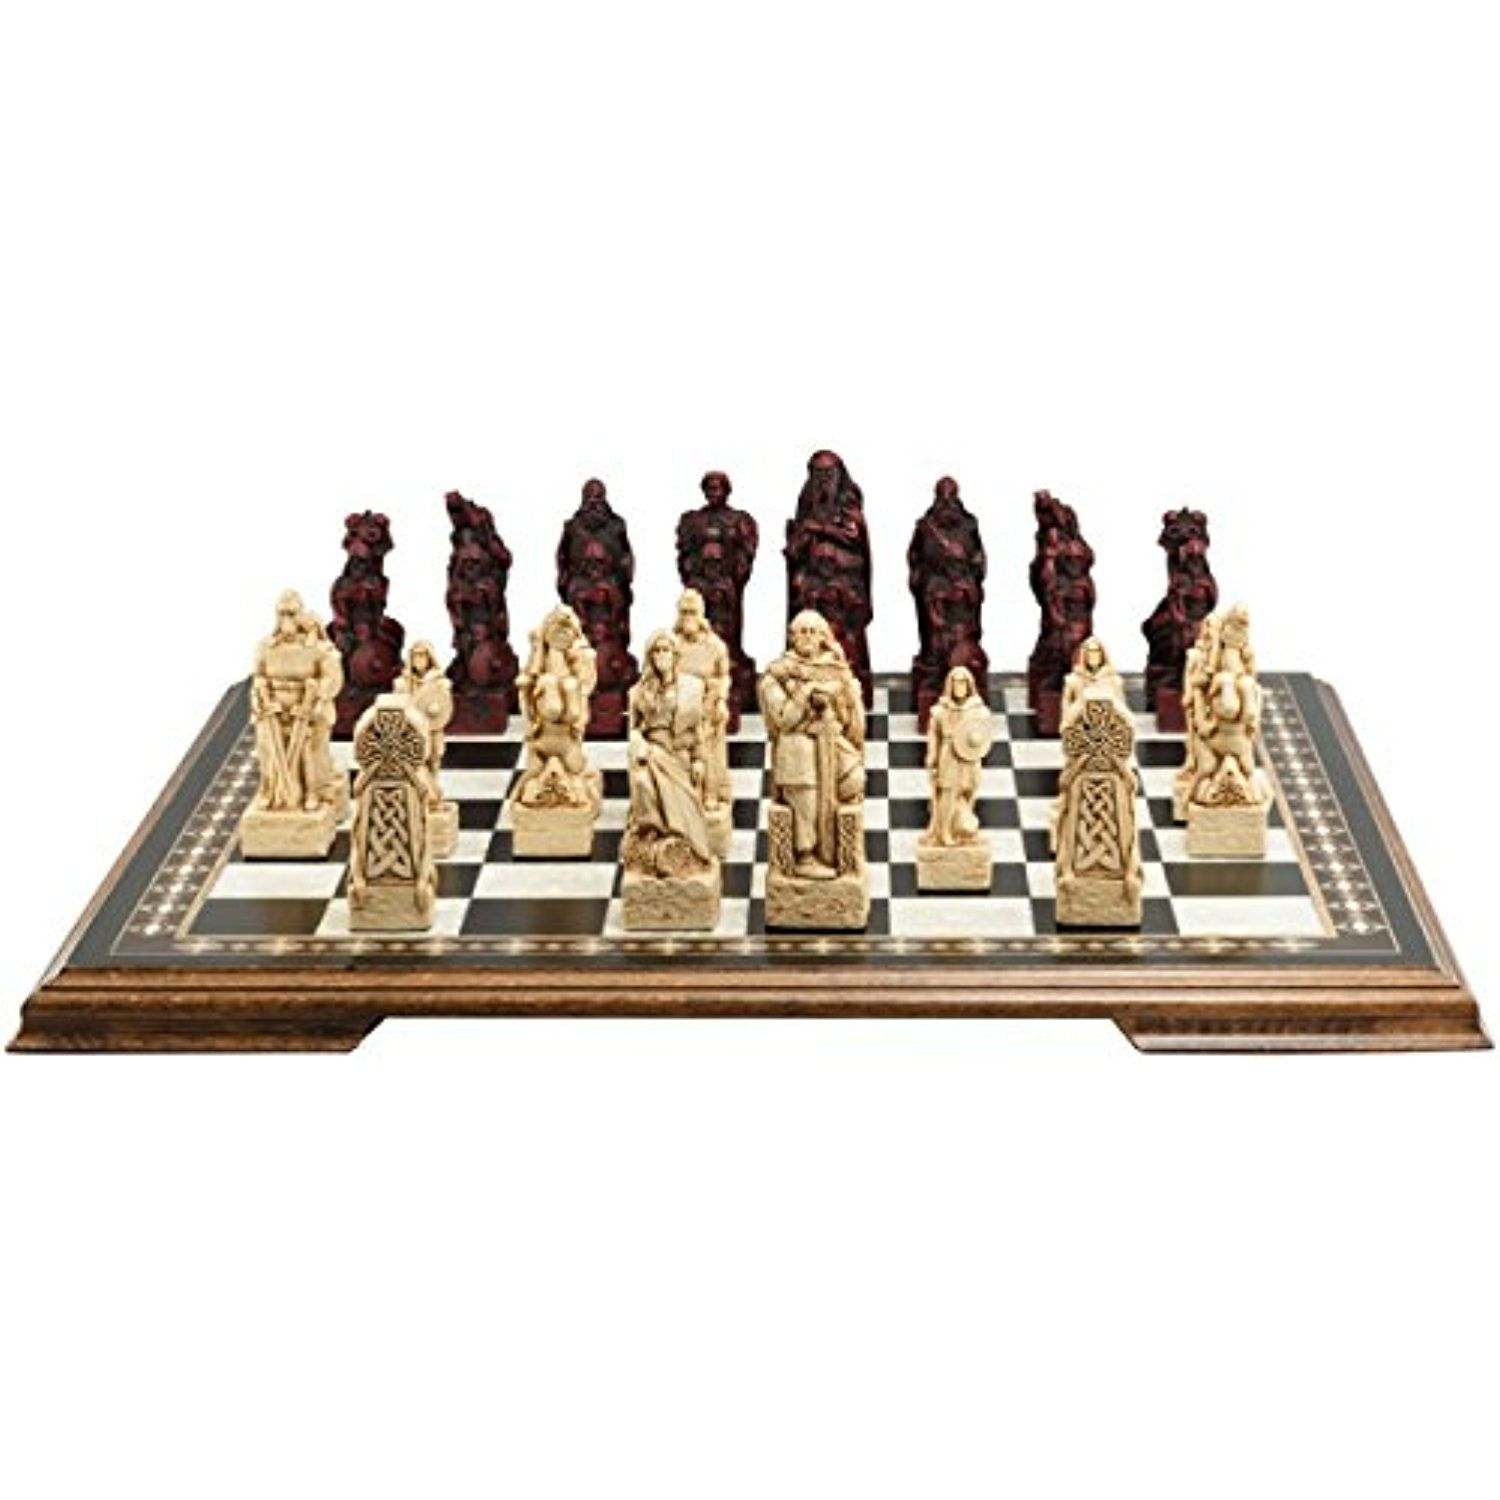 Celtic And Viking Themed Chess Set 4 5 Inches In Presentation Box Handmade In Uk Ivory And Burgundy Read Mor Themed Chess Sets Chess Set Viking Chess